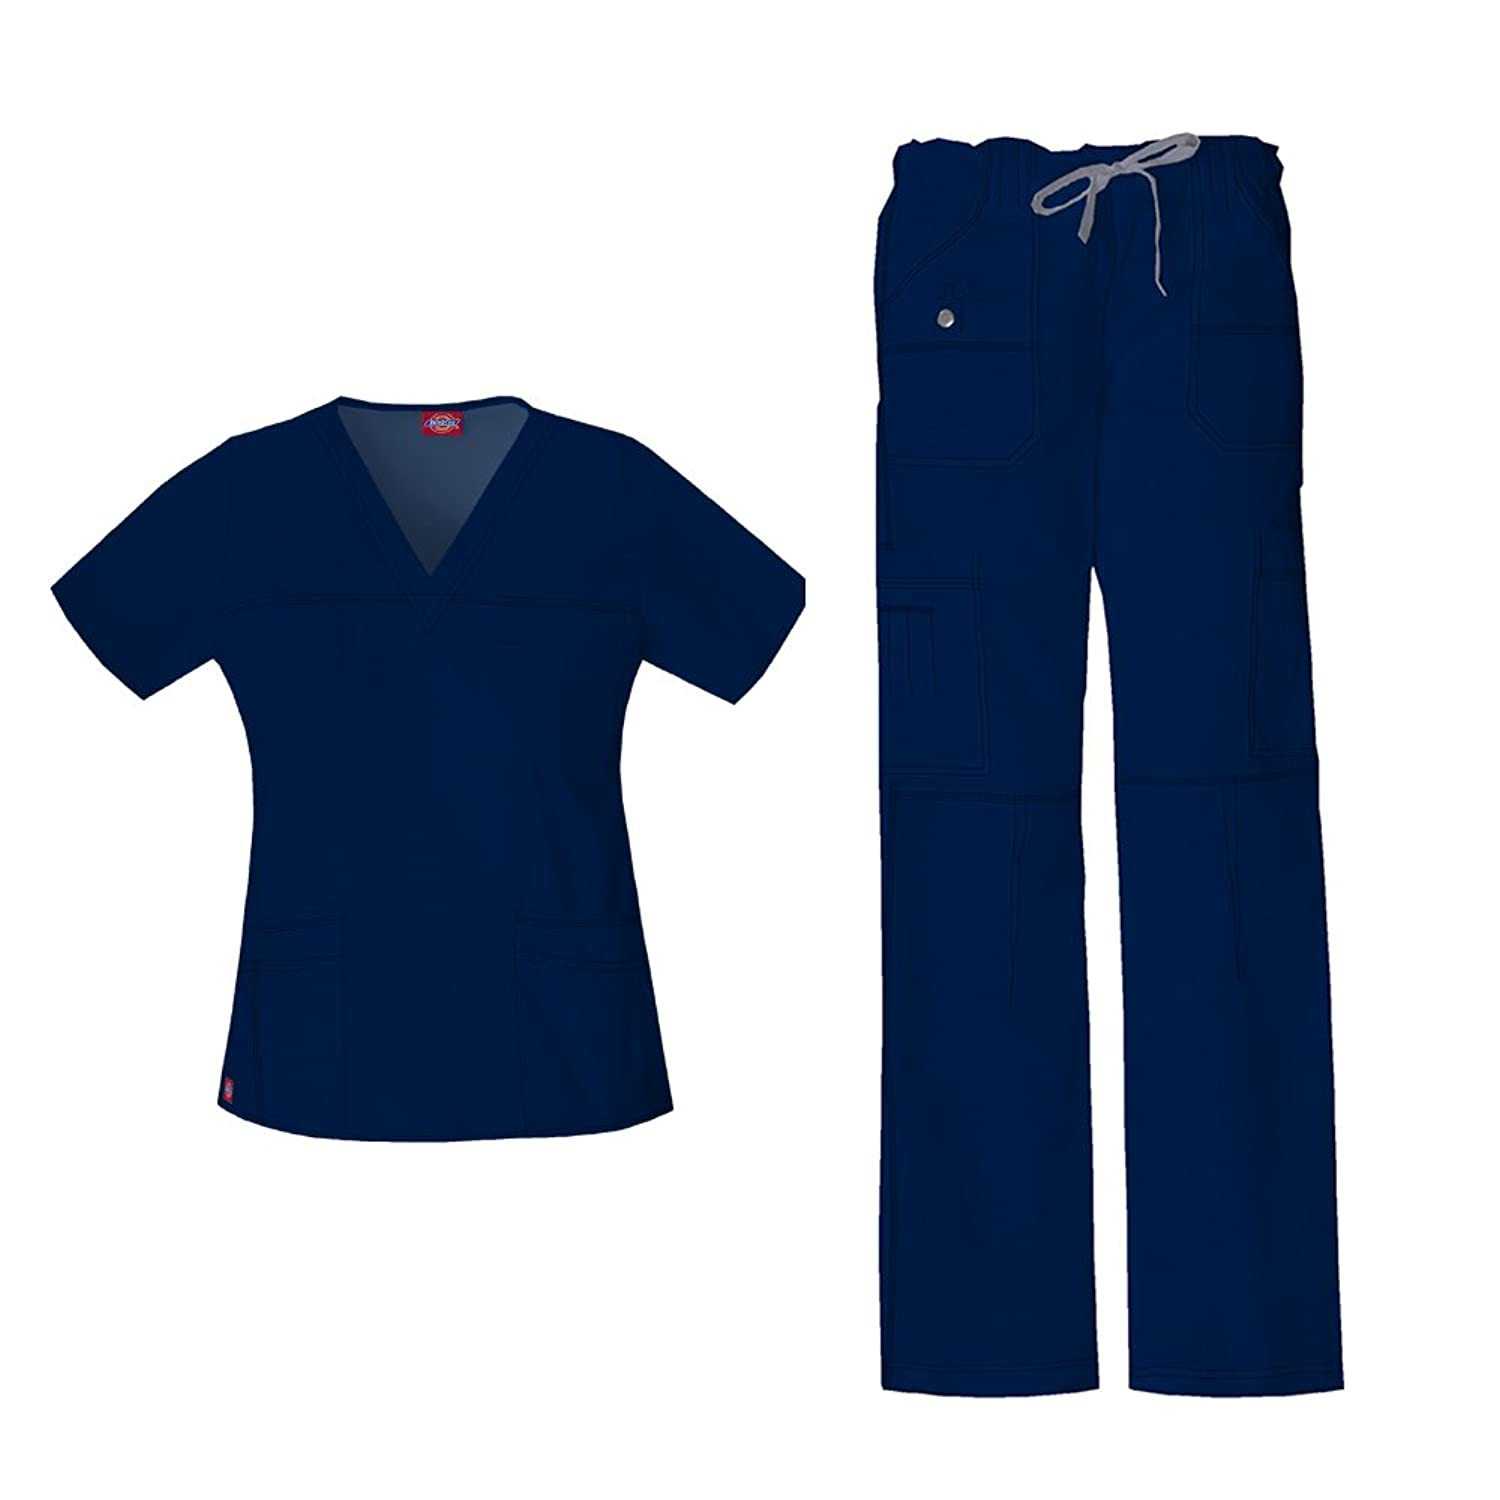 3cd8bf751a4d6 Scrub Set includes the Dickies Women\'s Gen Flex Junior Fit \'Youtility\'  Top 817455 & Low Rise Drawstring Cargo Pant 857455